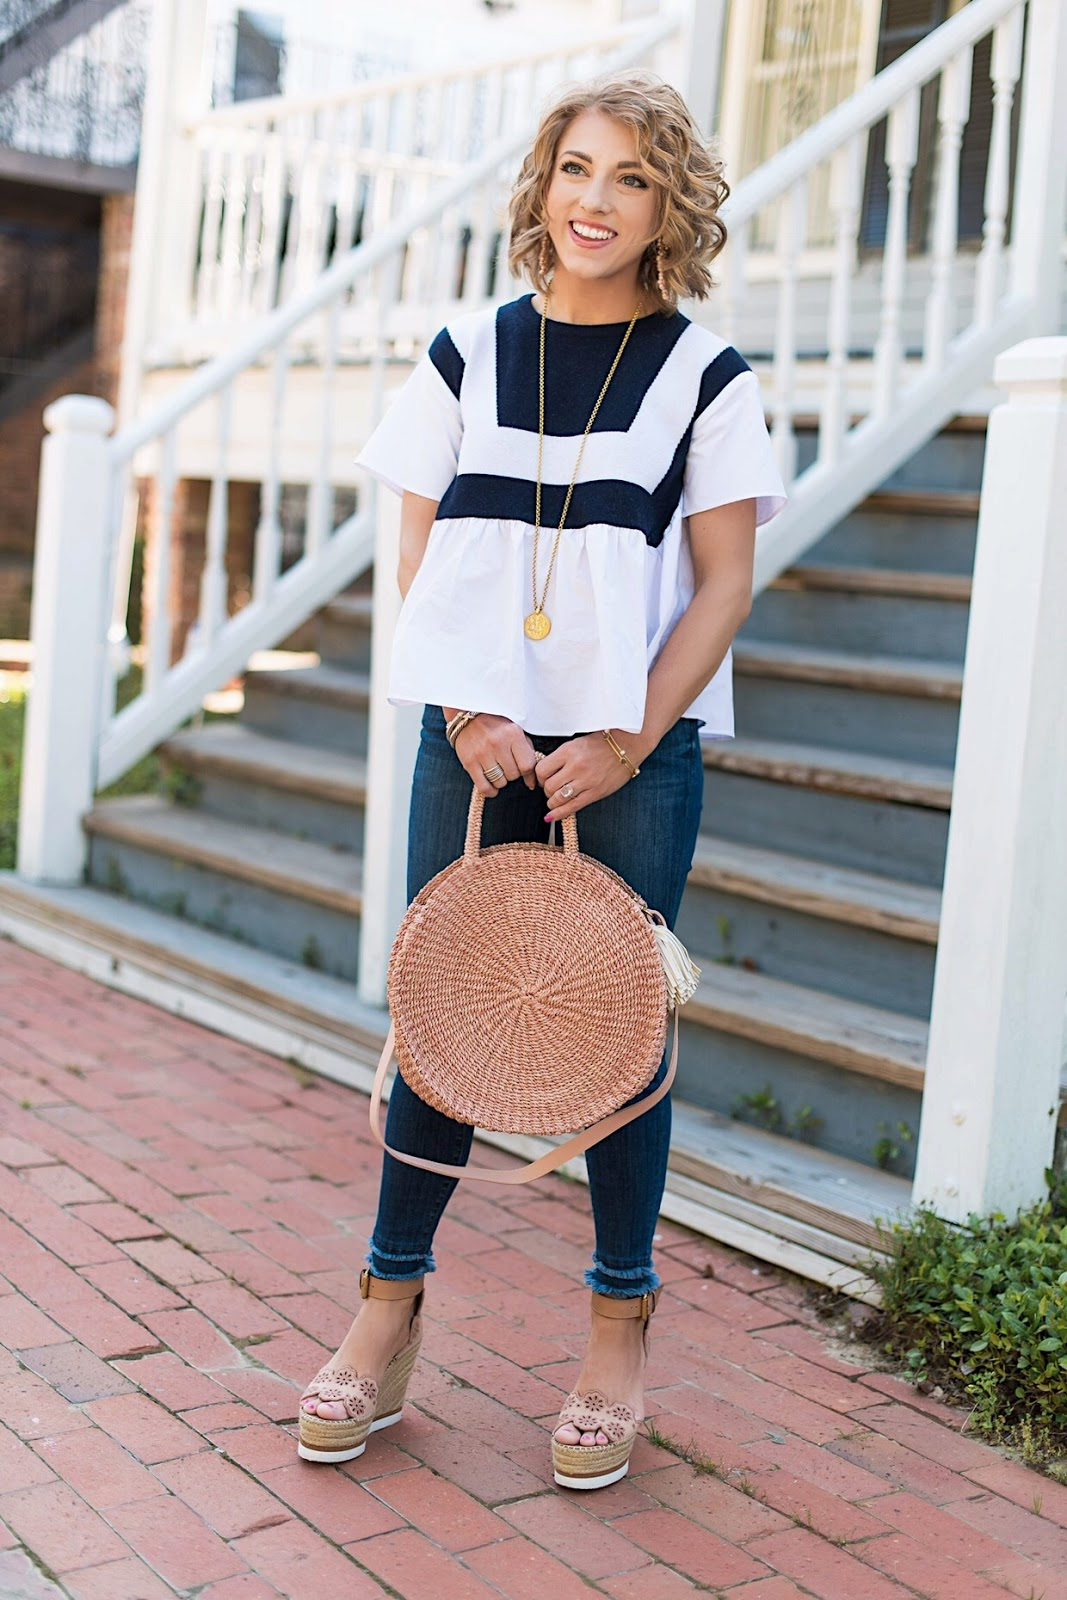 English Factory Navy and White Tanner Knit Top + Clare V. Alice Bag in Blush - Something Delightful Blog